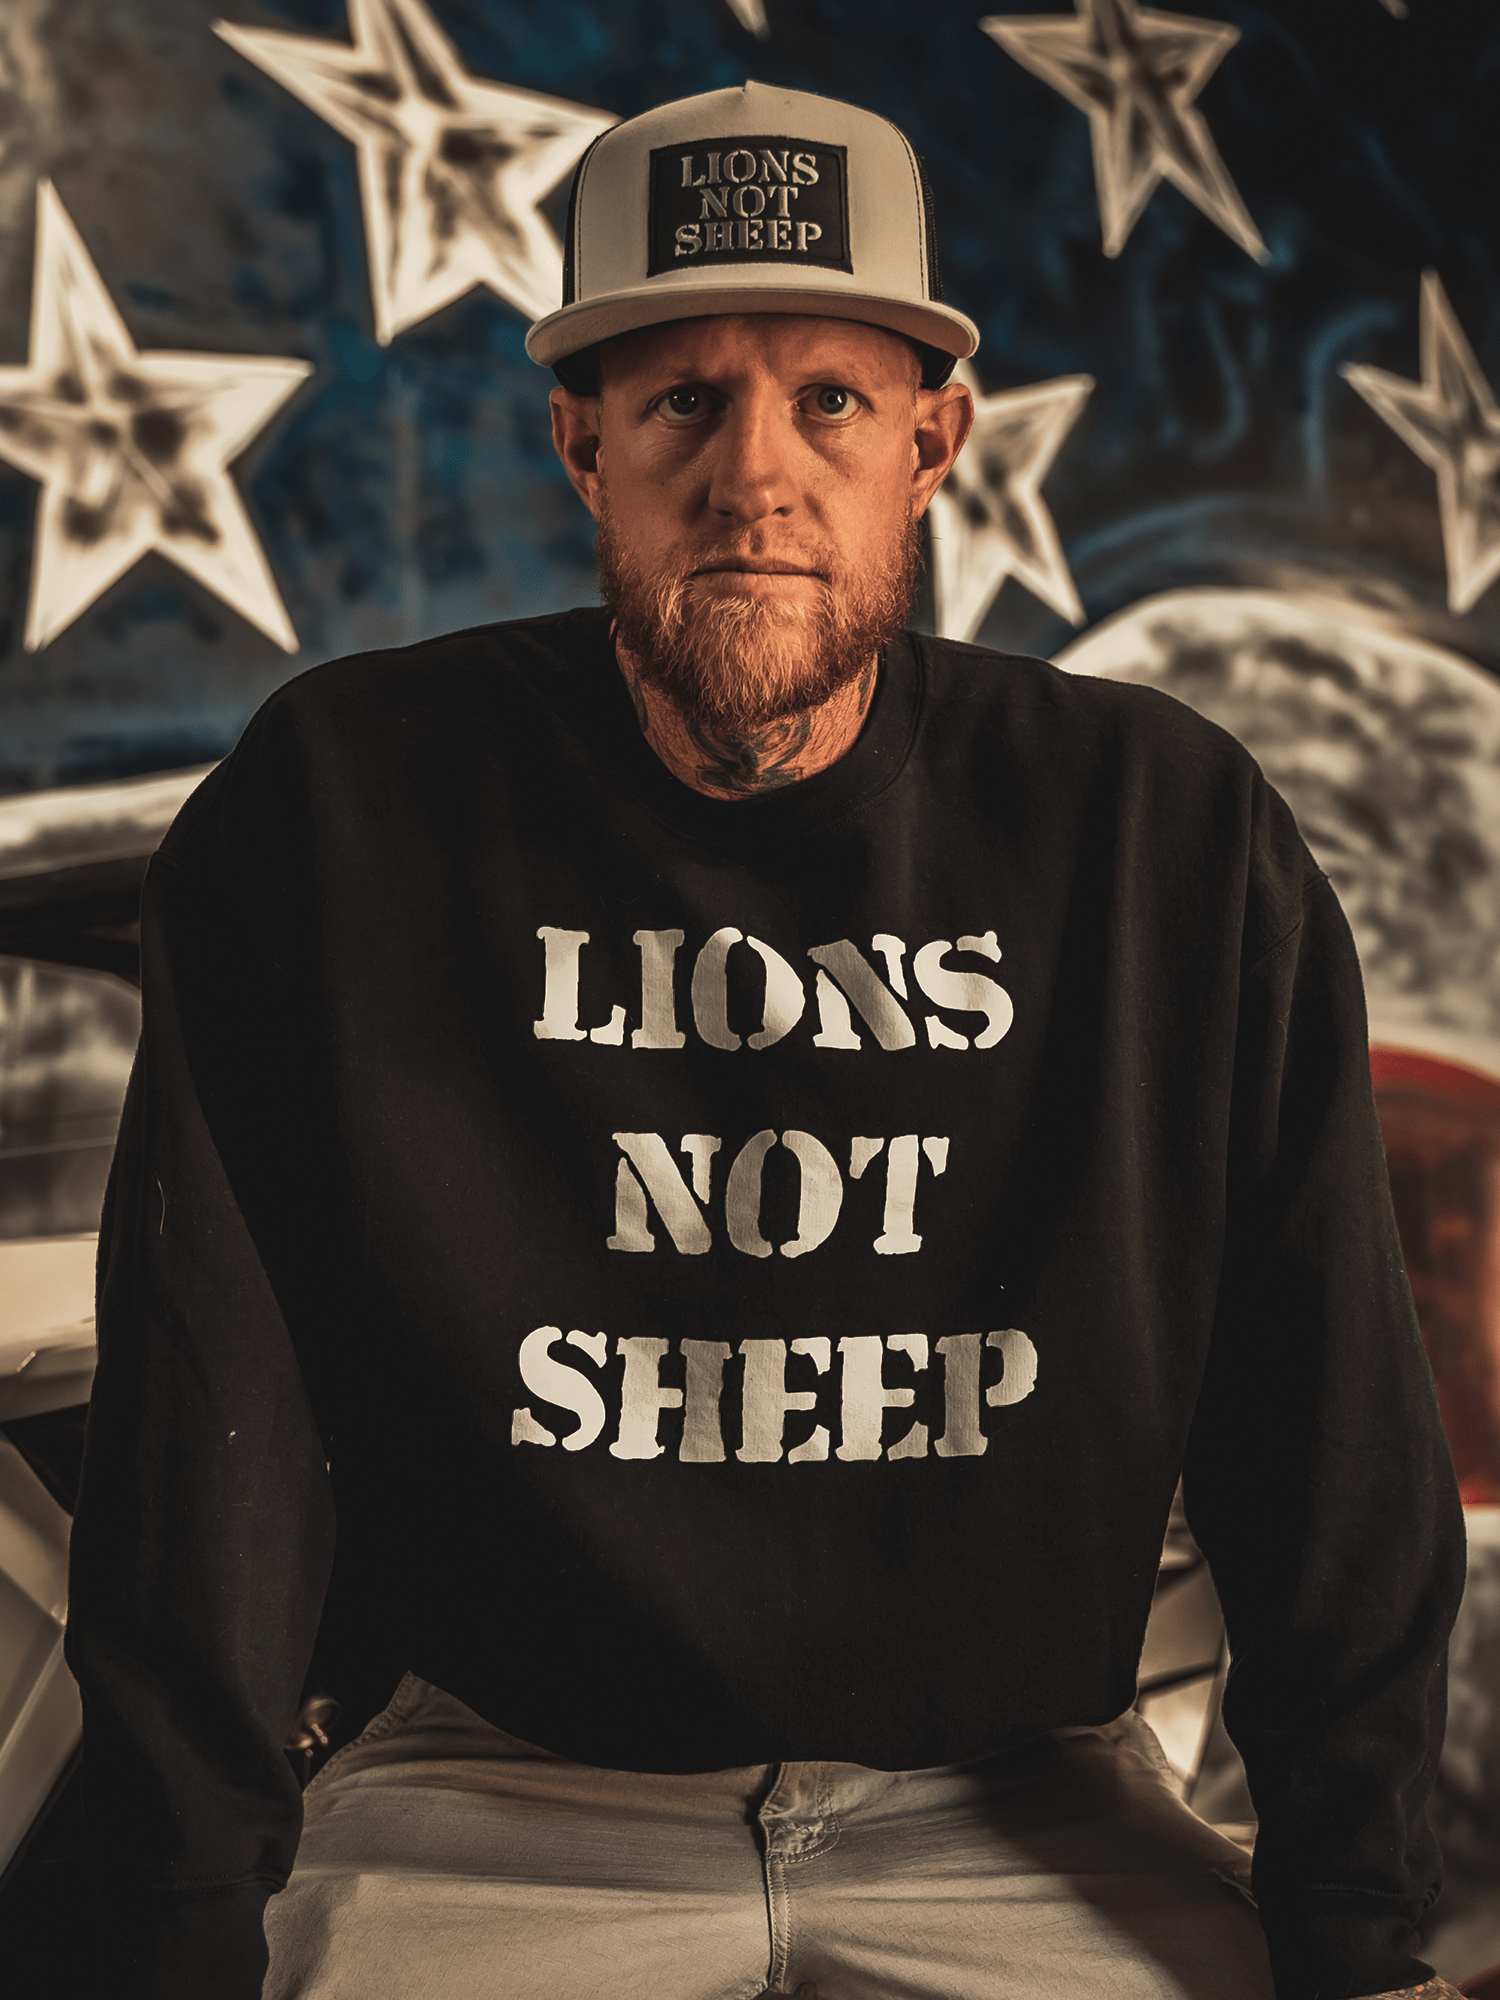 LIONS NOT SHEEP OG Crew Neck Sweatshirt - Lions Not Sheep